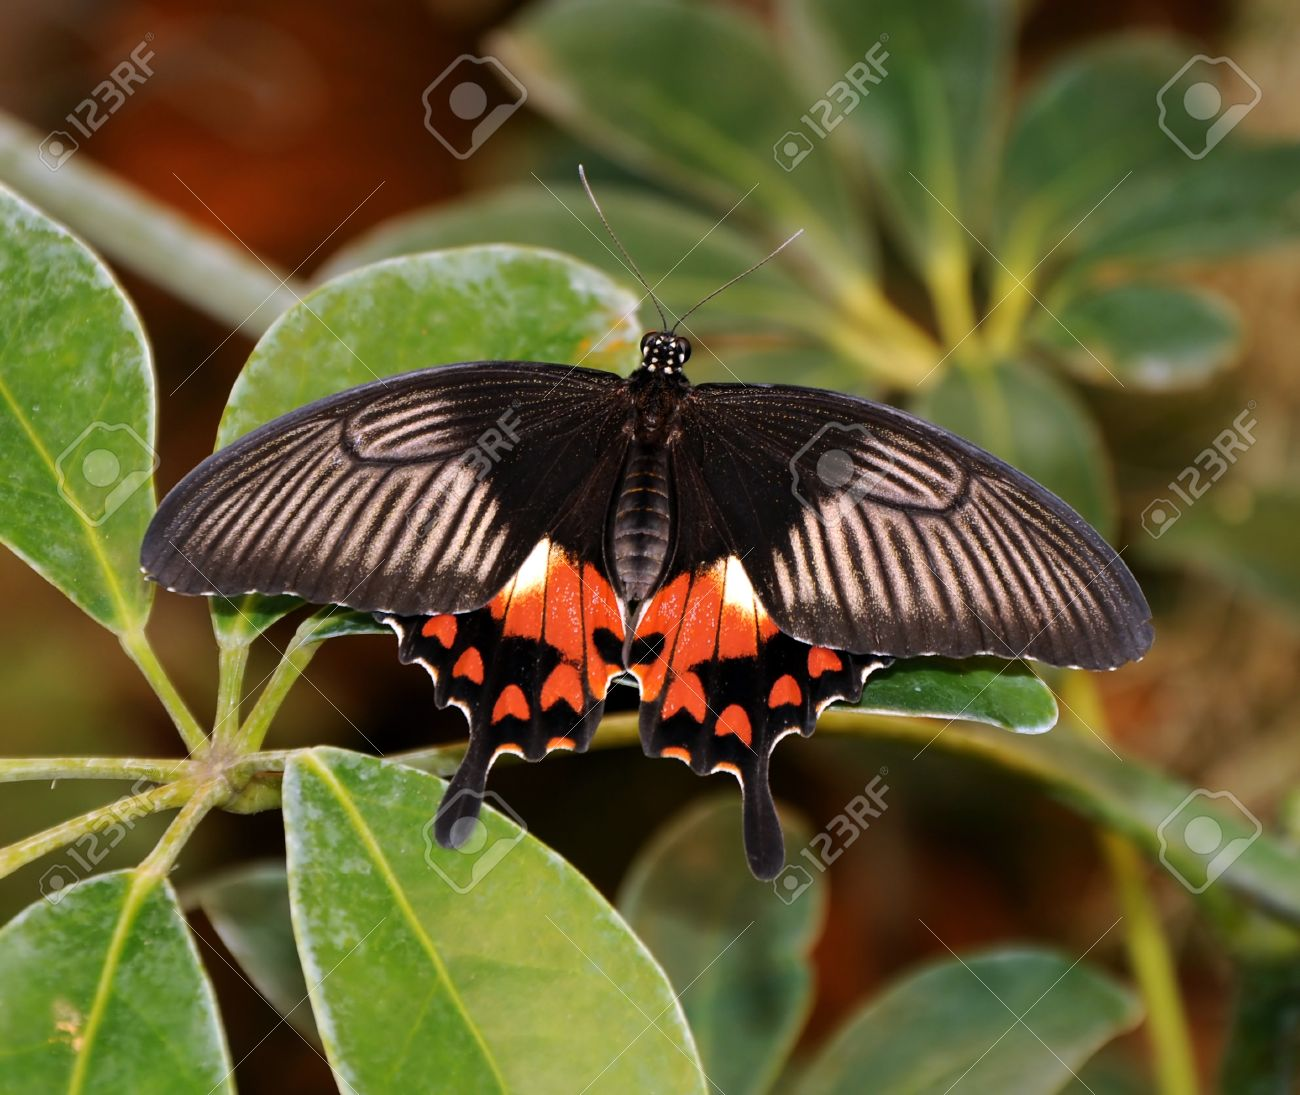 Sưu tập Bộ cánh vẩy 2 - Page 63 15582252-scarlet-mormon-papilio-deiphobus-rumanzovia-black-butterfly-on-a-background-of-green-leaves